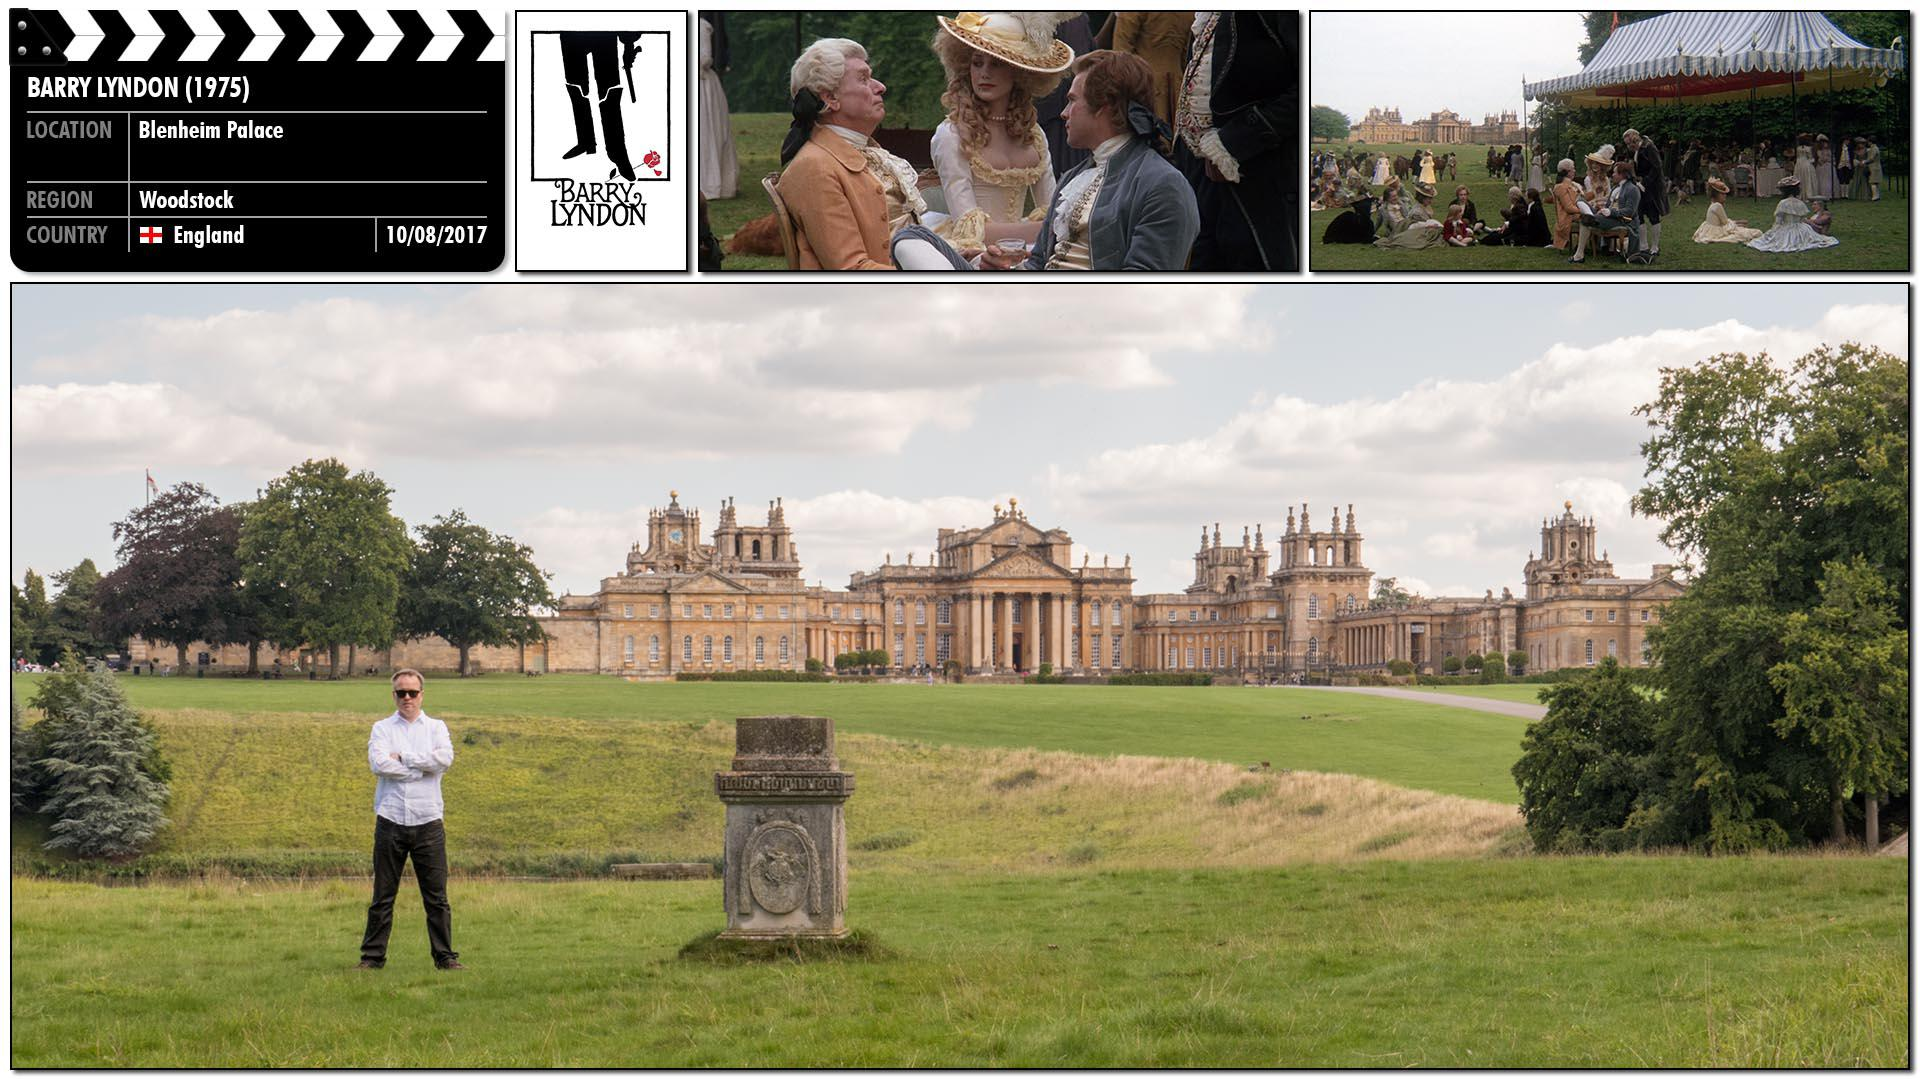 Filming location photo for Barry Lyndon (1975) 2 of 15